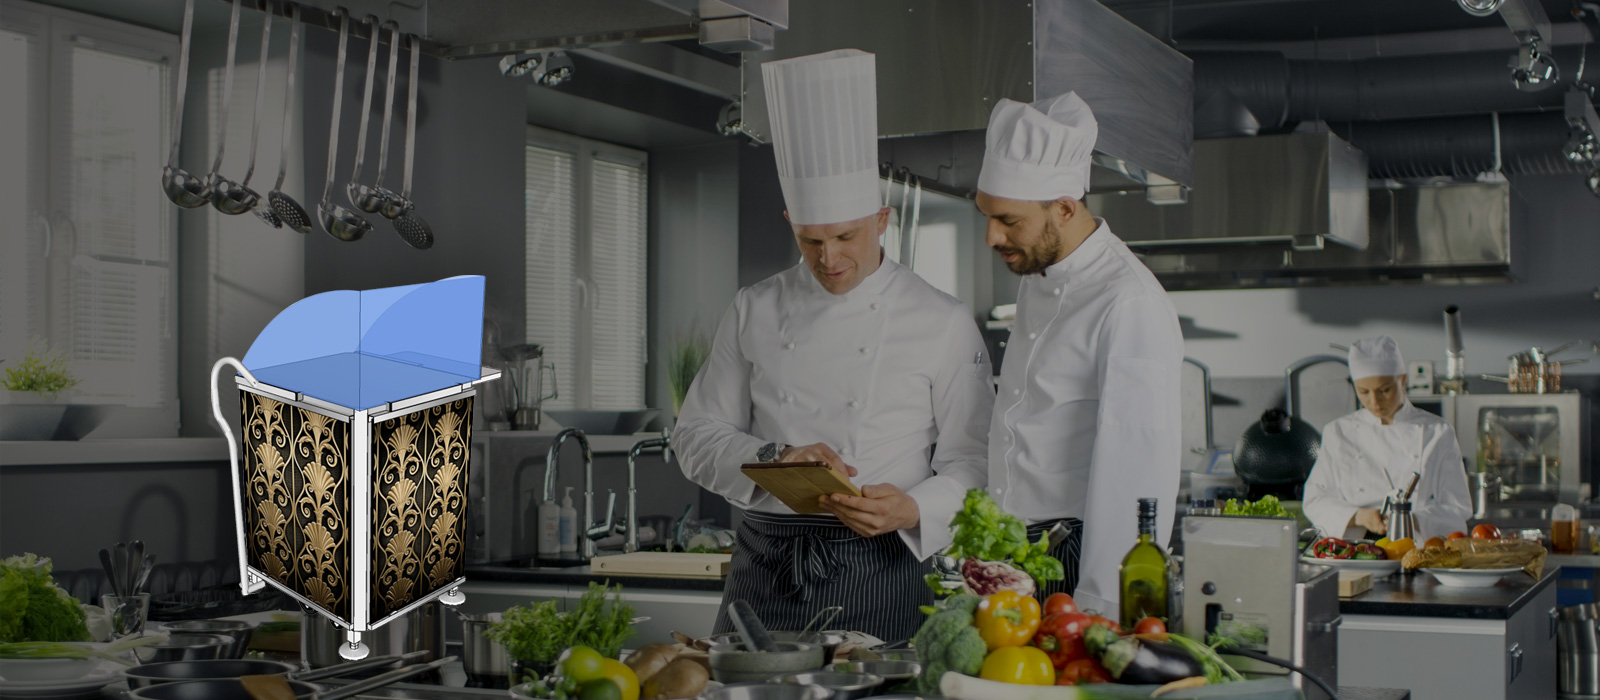 Chef cabinet with chefs in the background